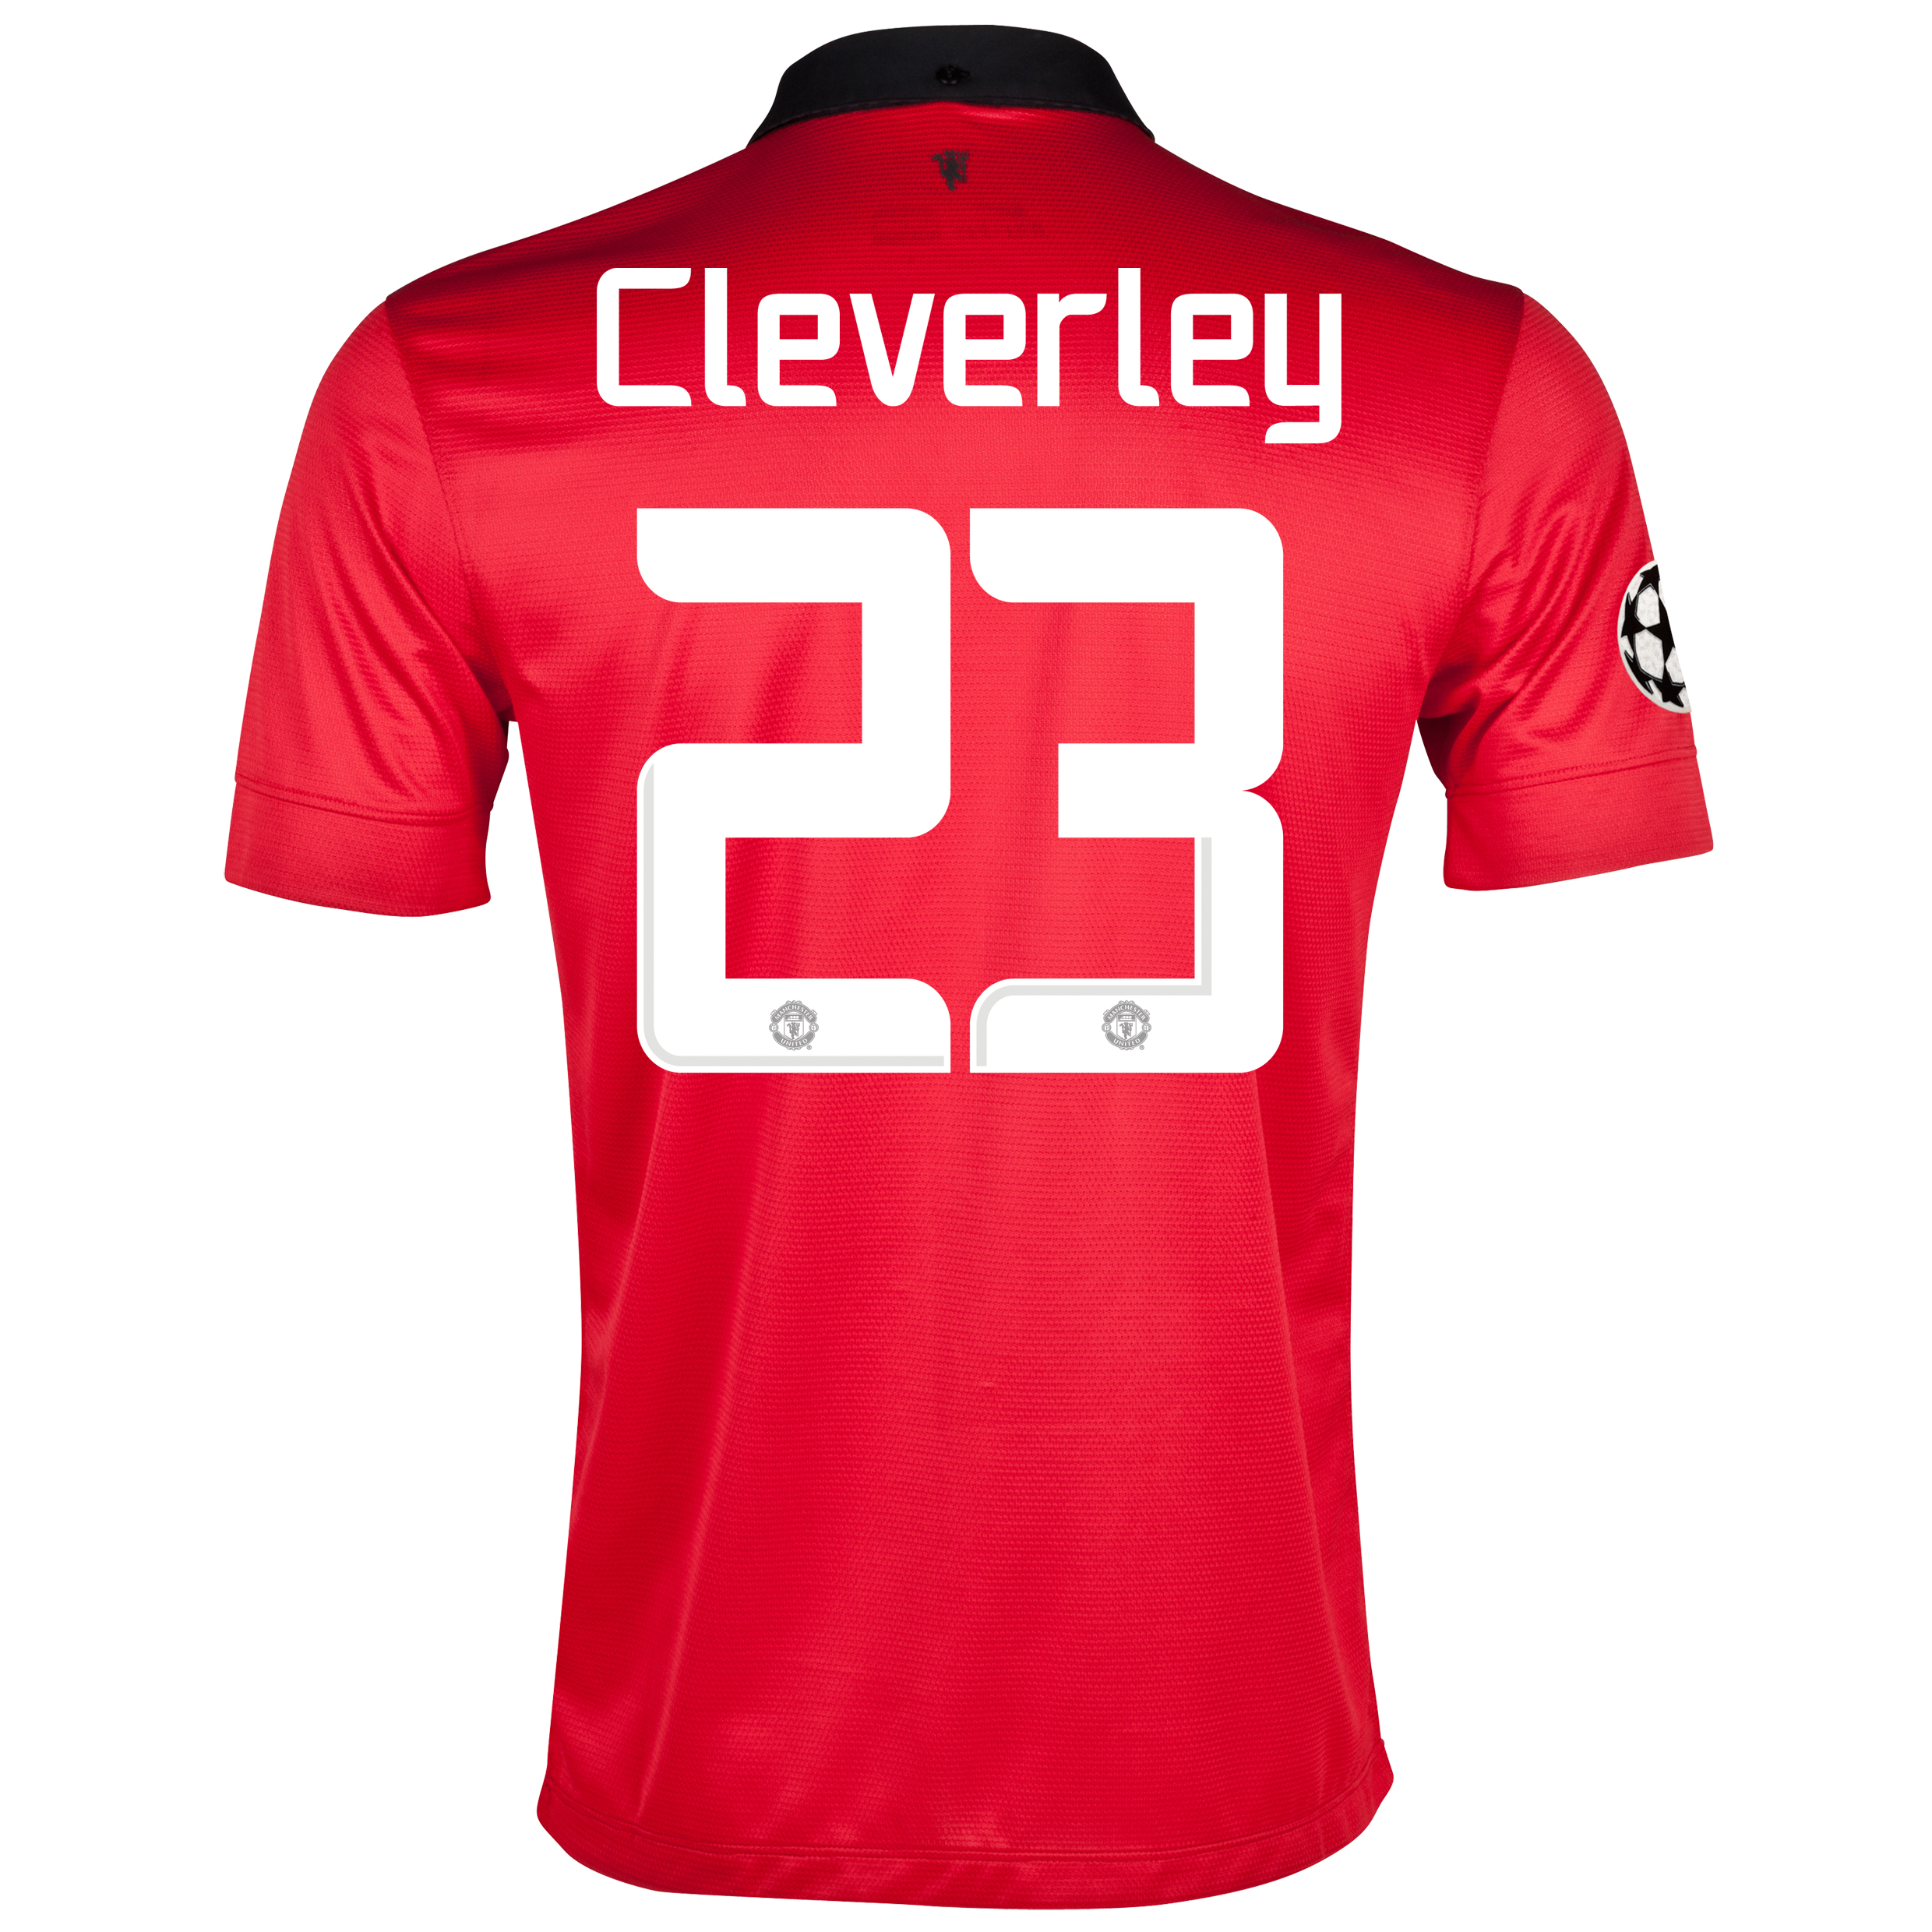 Manchester United UEFA Champions League Home Shirt 2013/14 with Cleverley 23 printing